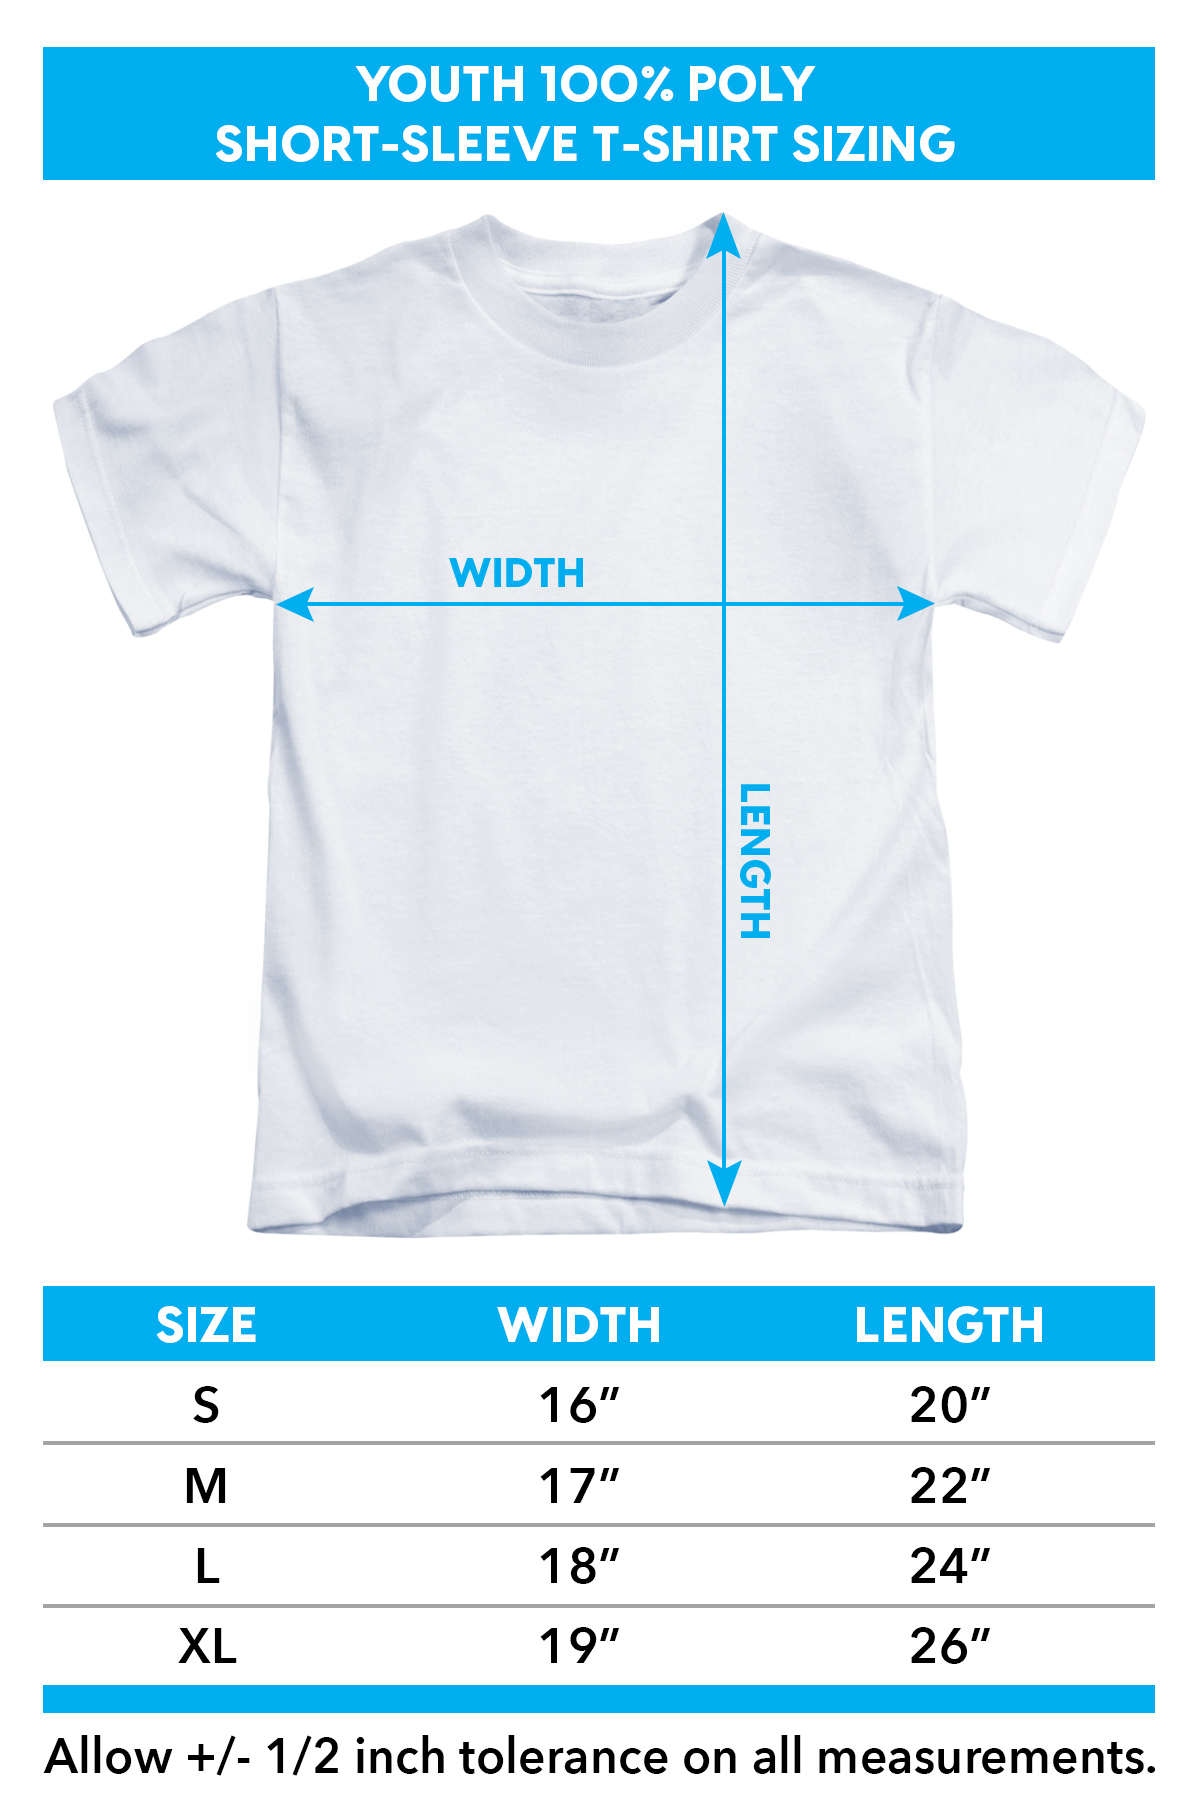 Sizing Chart for Batman T-Shirt - Sublimated Riddler Uniform